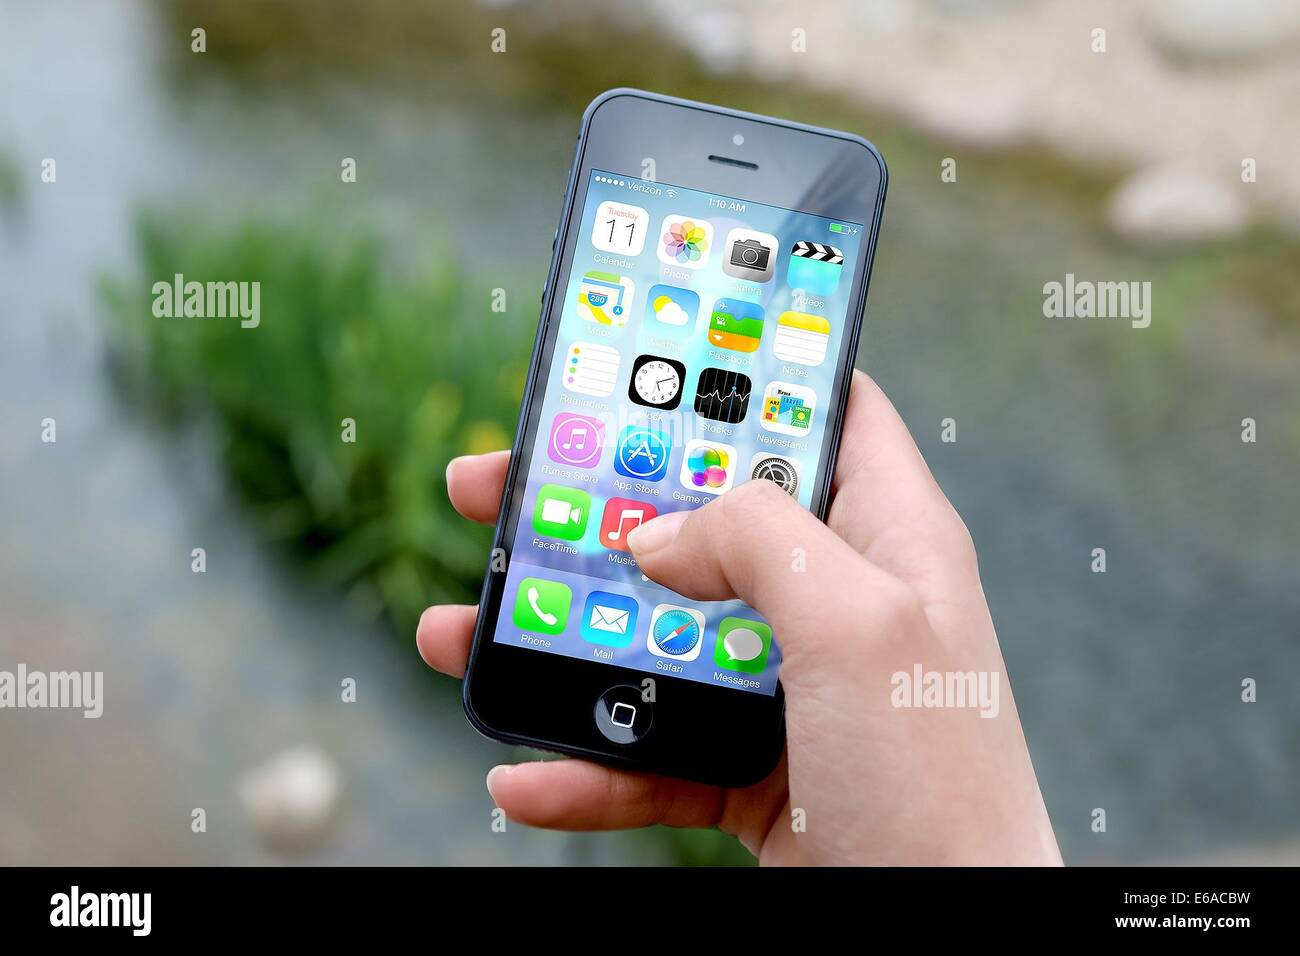 iphone smartphone apps apple inc mobile phone - Stock Image